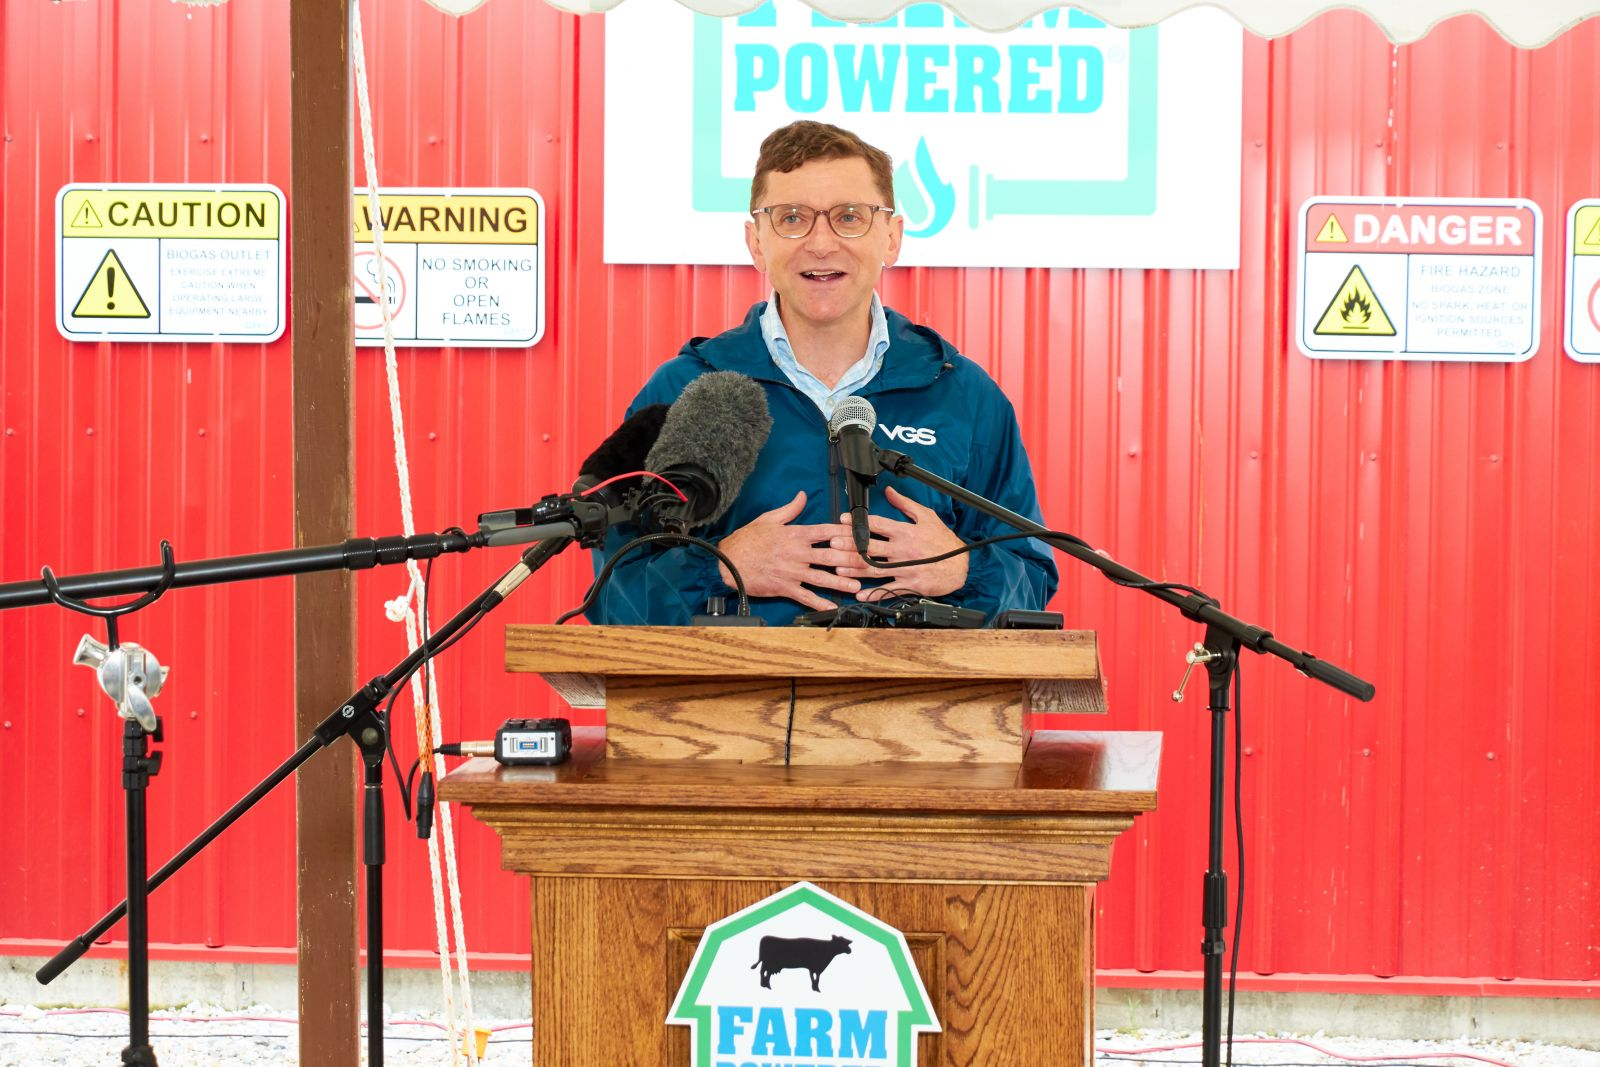 Neale Lunderville – President & CEO of VGS at Goodrich Farm Digester Opening Ceremony